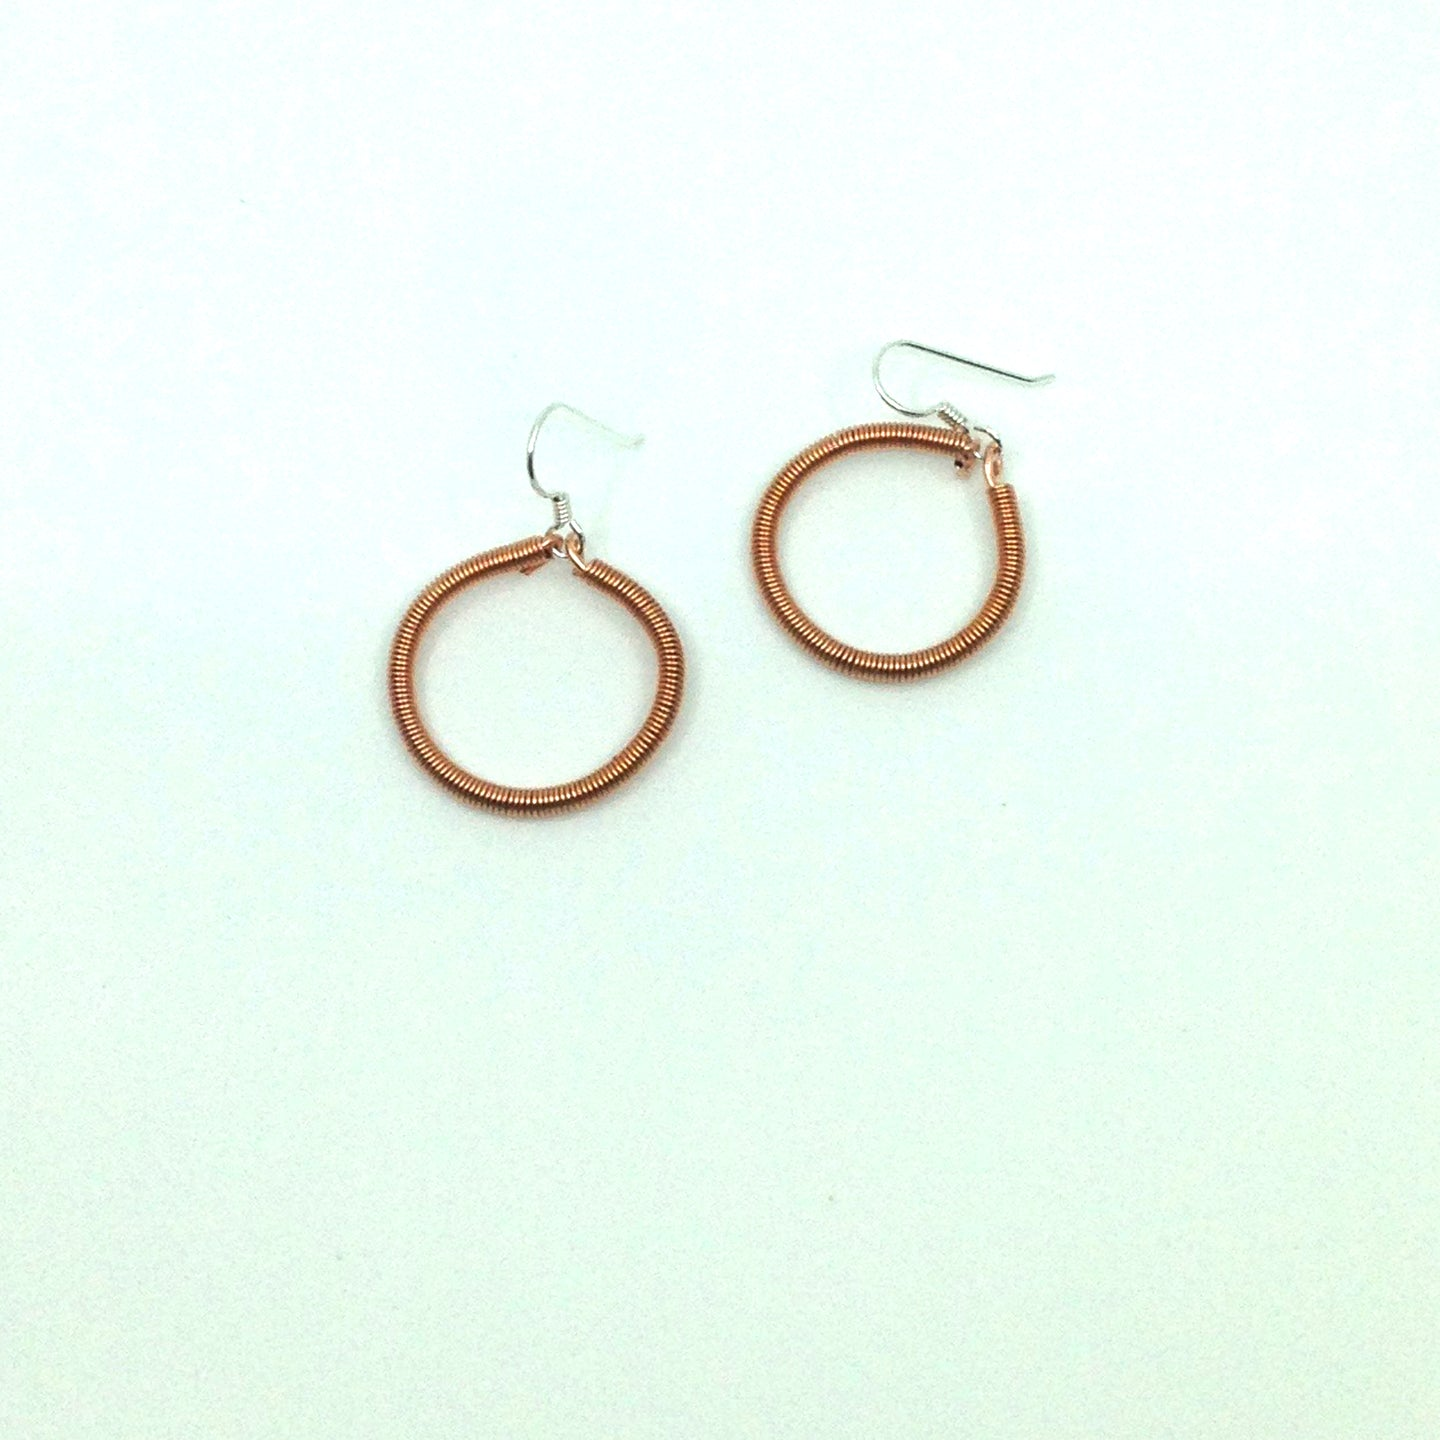 Hoop Earrings in Copper and Sterling Silver